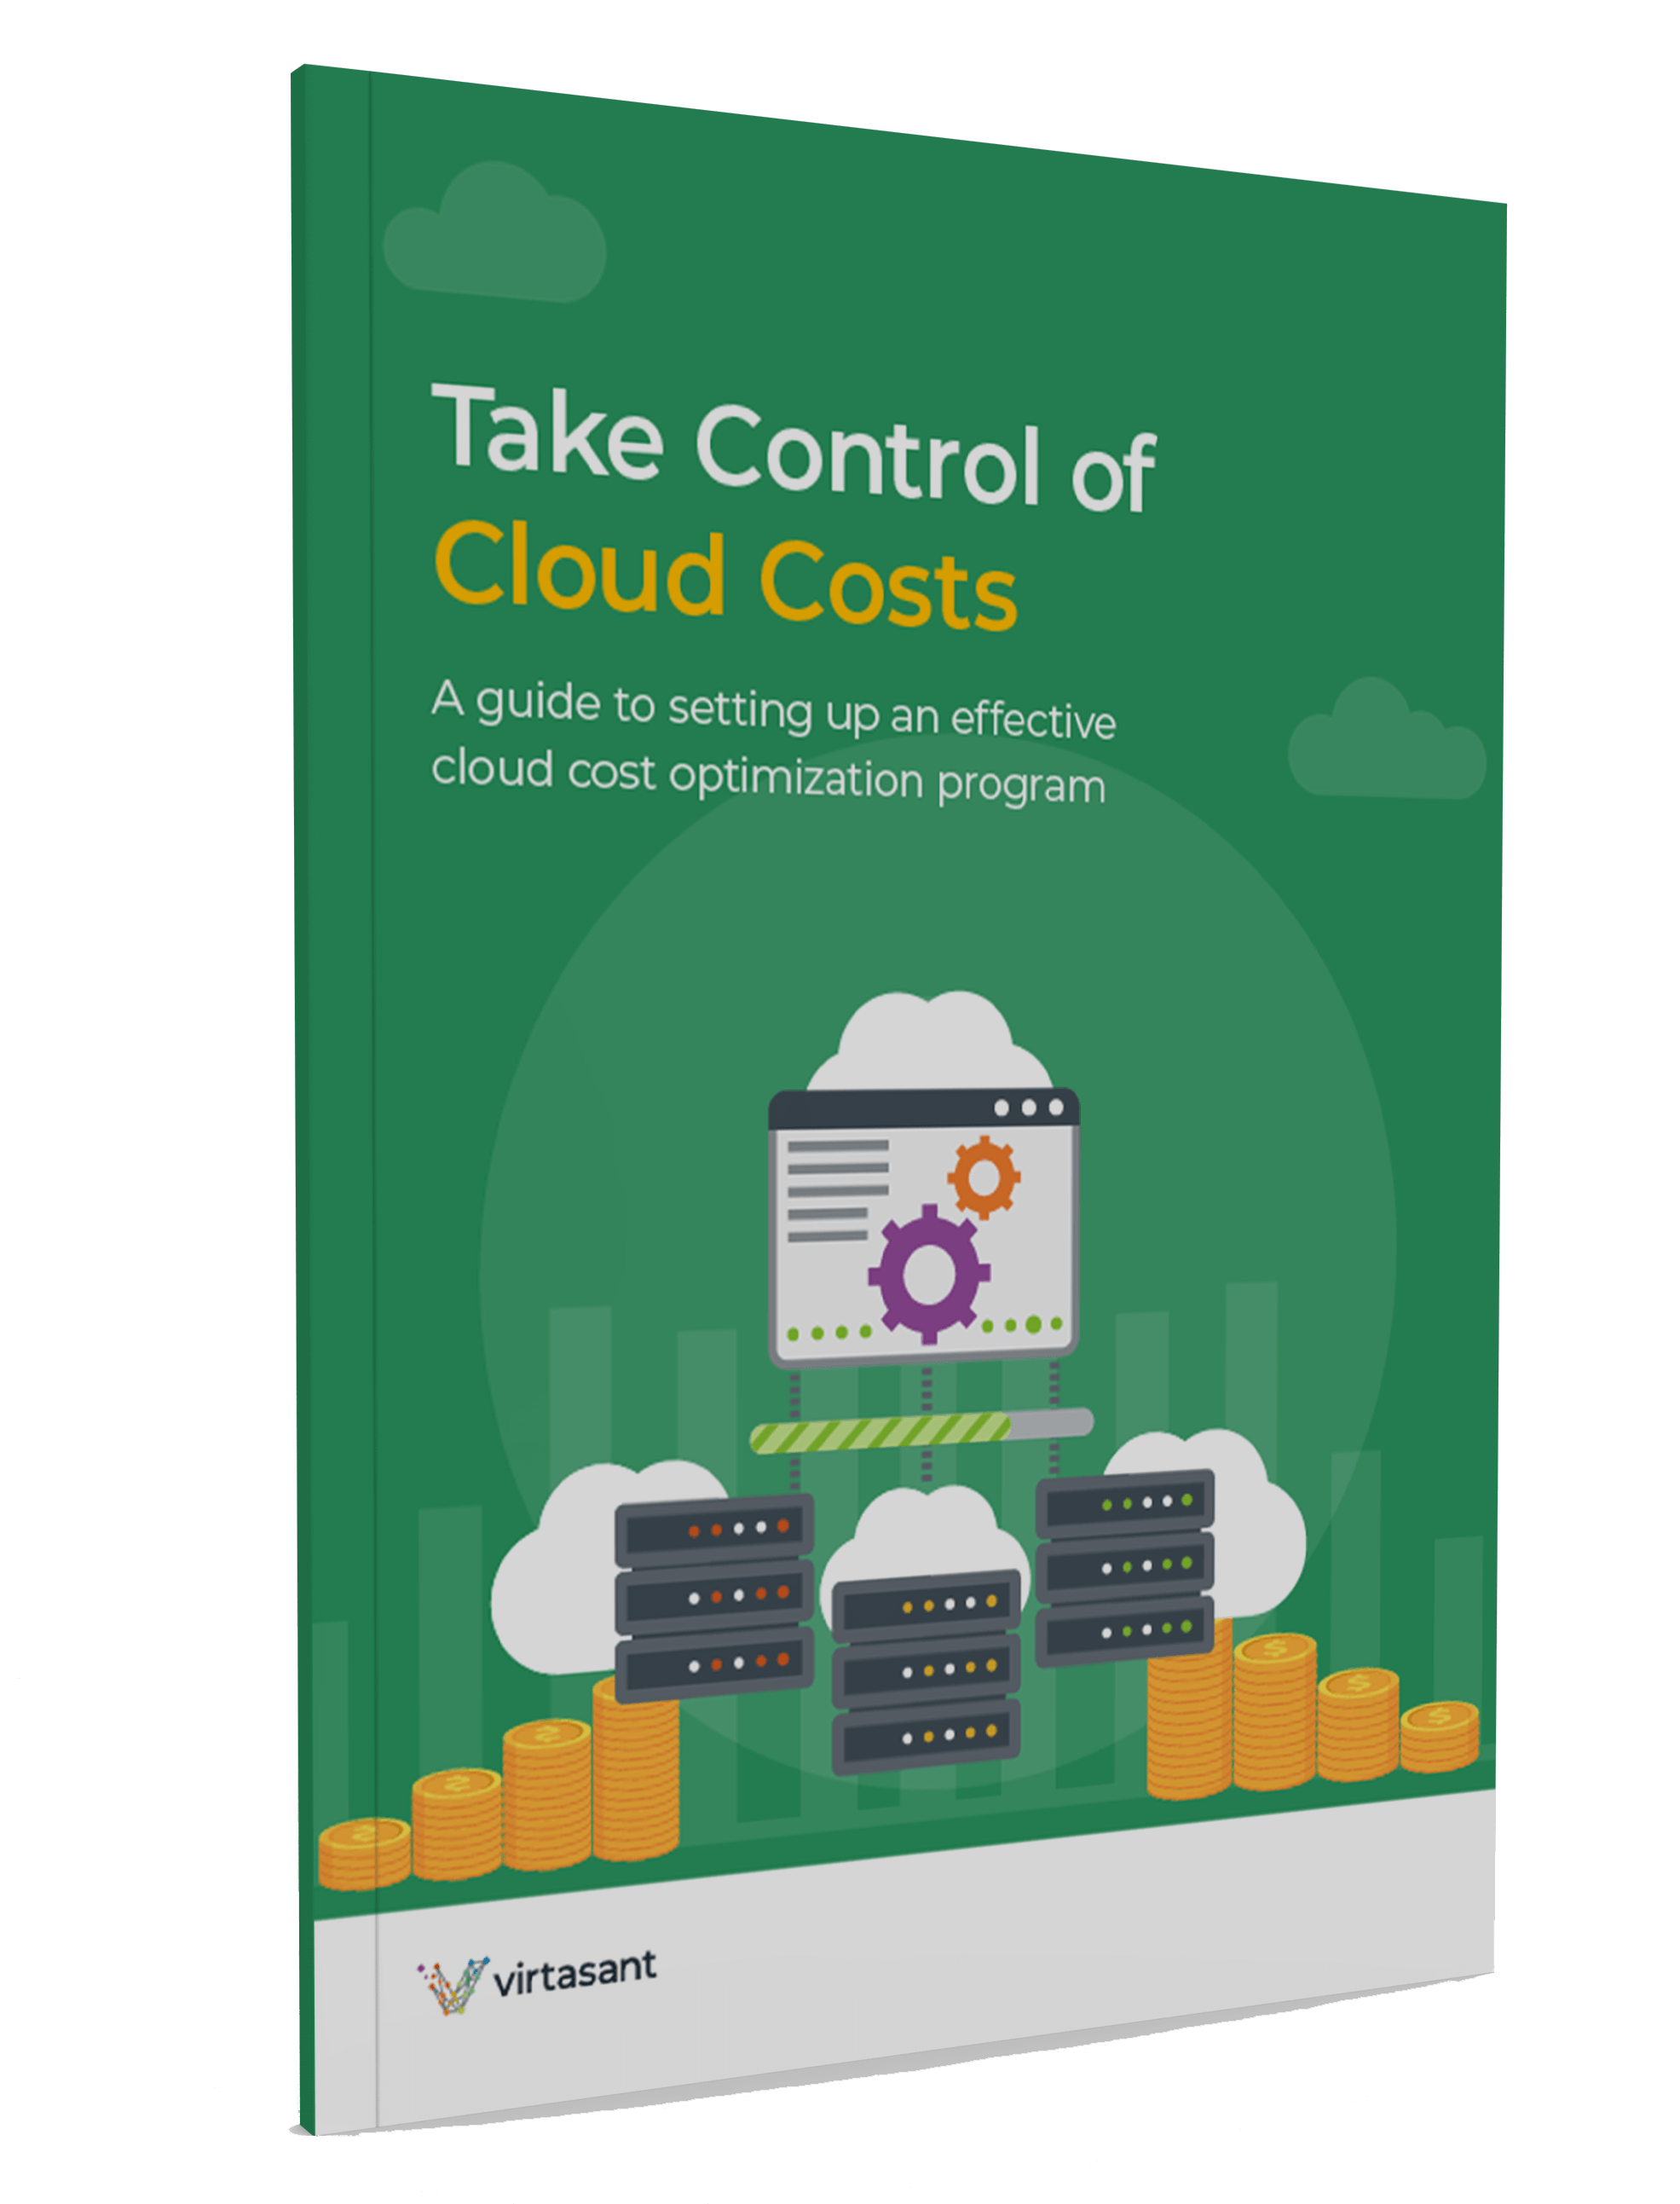 Take Control of Cloud Costs A guide to setting up an effective cloud cost optimization program